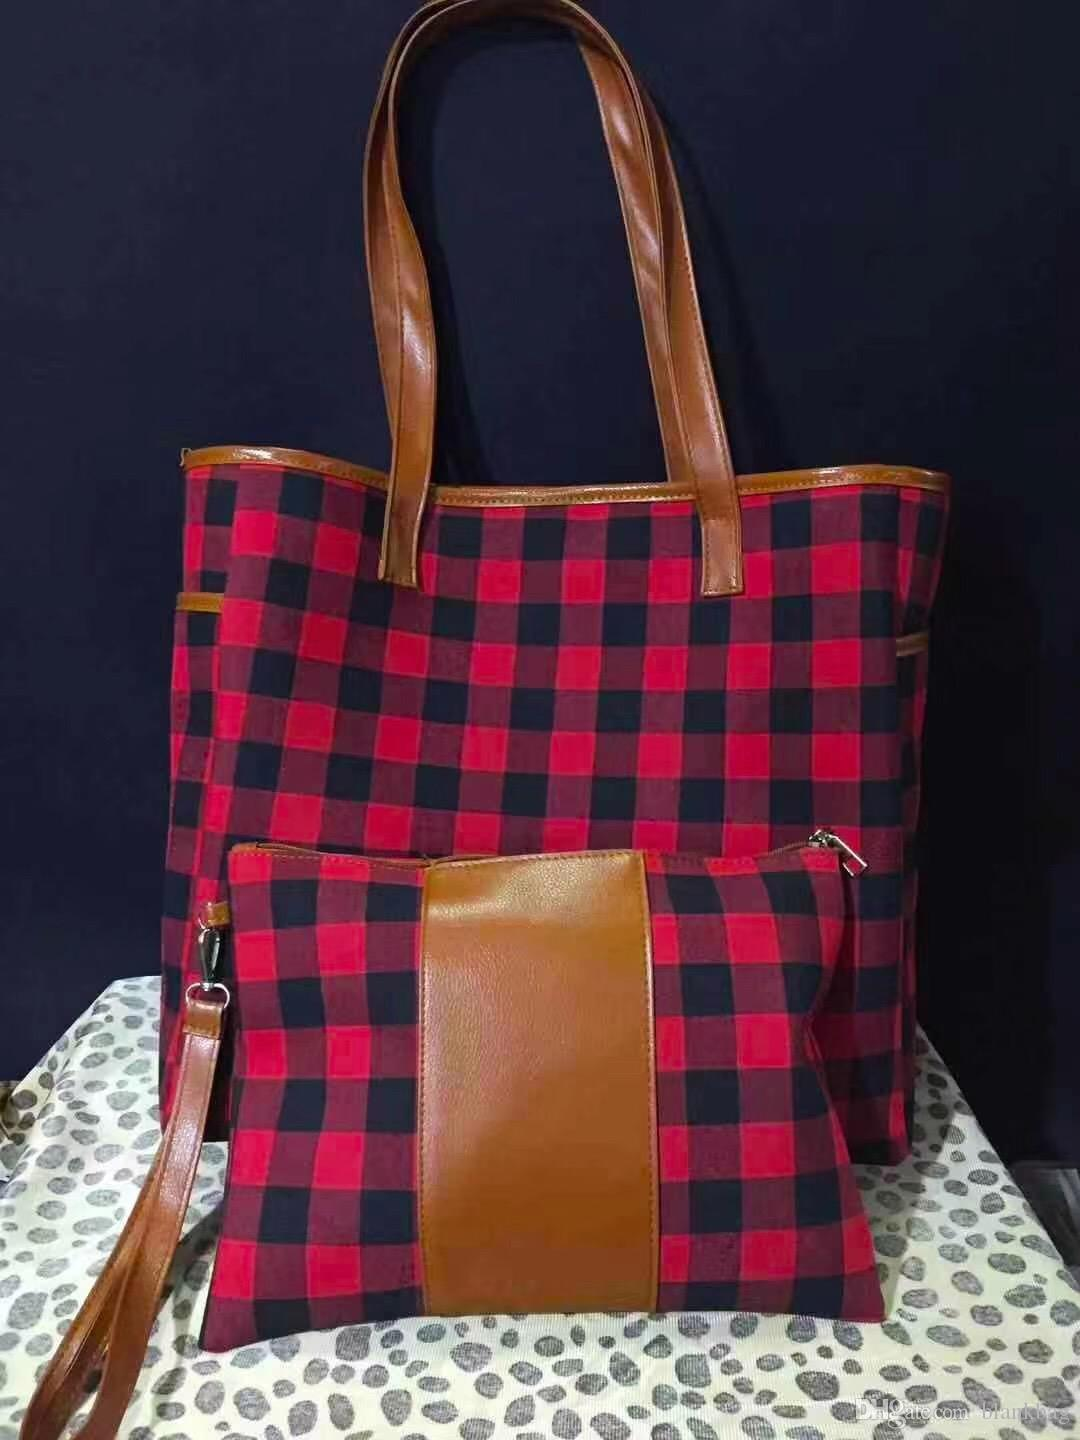 New hot design side pockets buffalo plaid handbag with small zipper wristlet purse sunflower women tote bag set leopard canvas shoulder bag